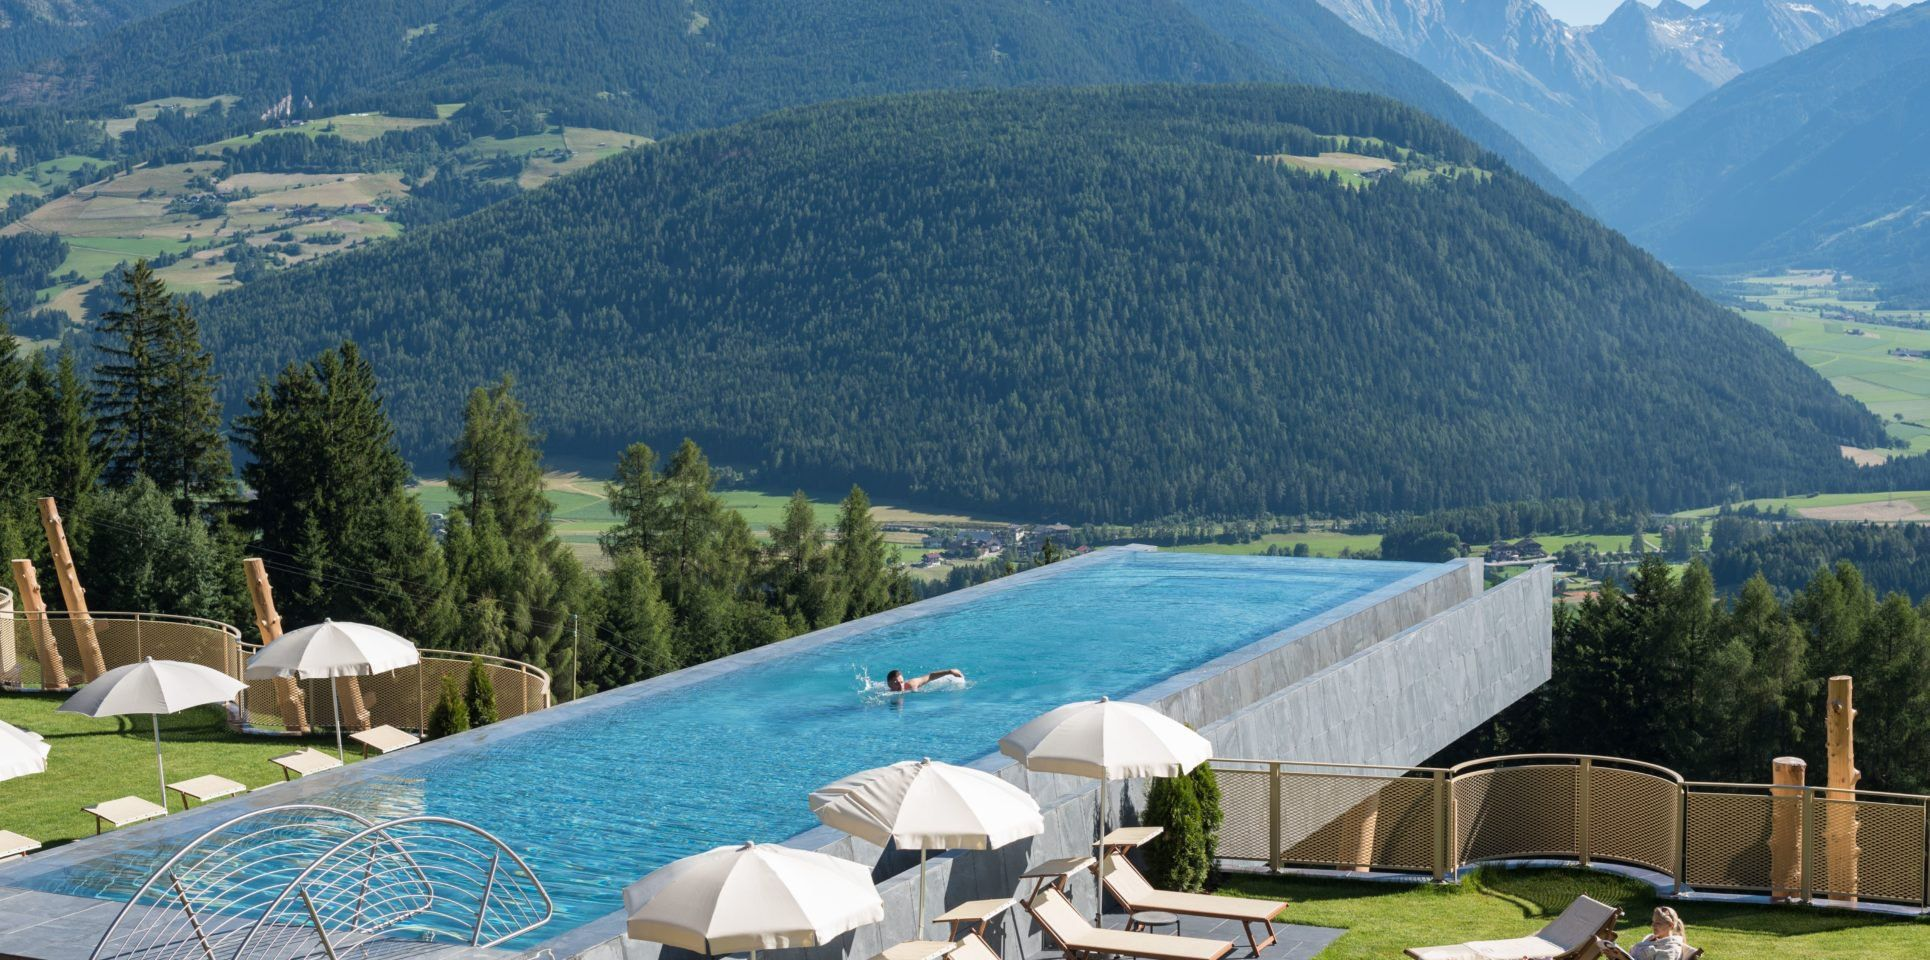 Best Hotel In Switzerland With Infinity Pool Hotel Hubertus South Tyrol Italy This Infinity Pool Has A Glass Bottom Hangs 40 Ft Above The Ground So You Can Fly A Pool Infinity Pool Luxury Vacation